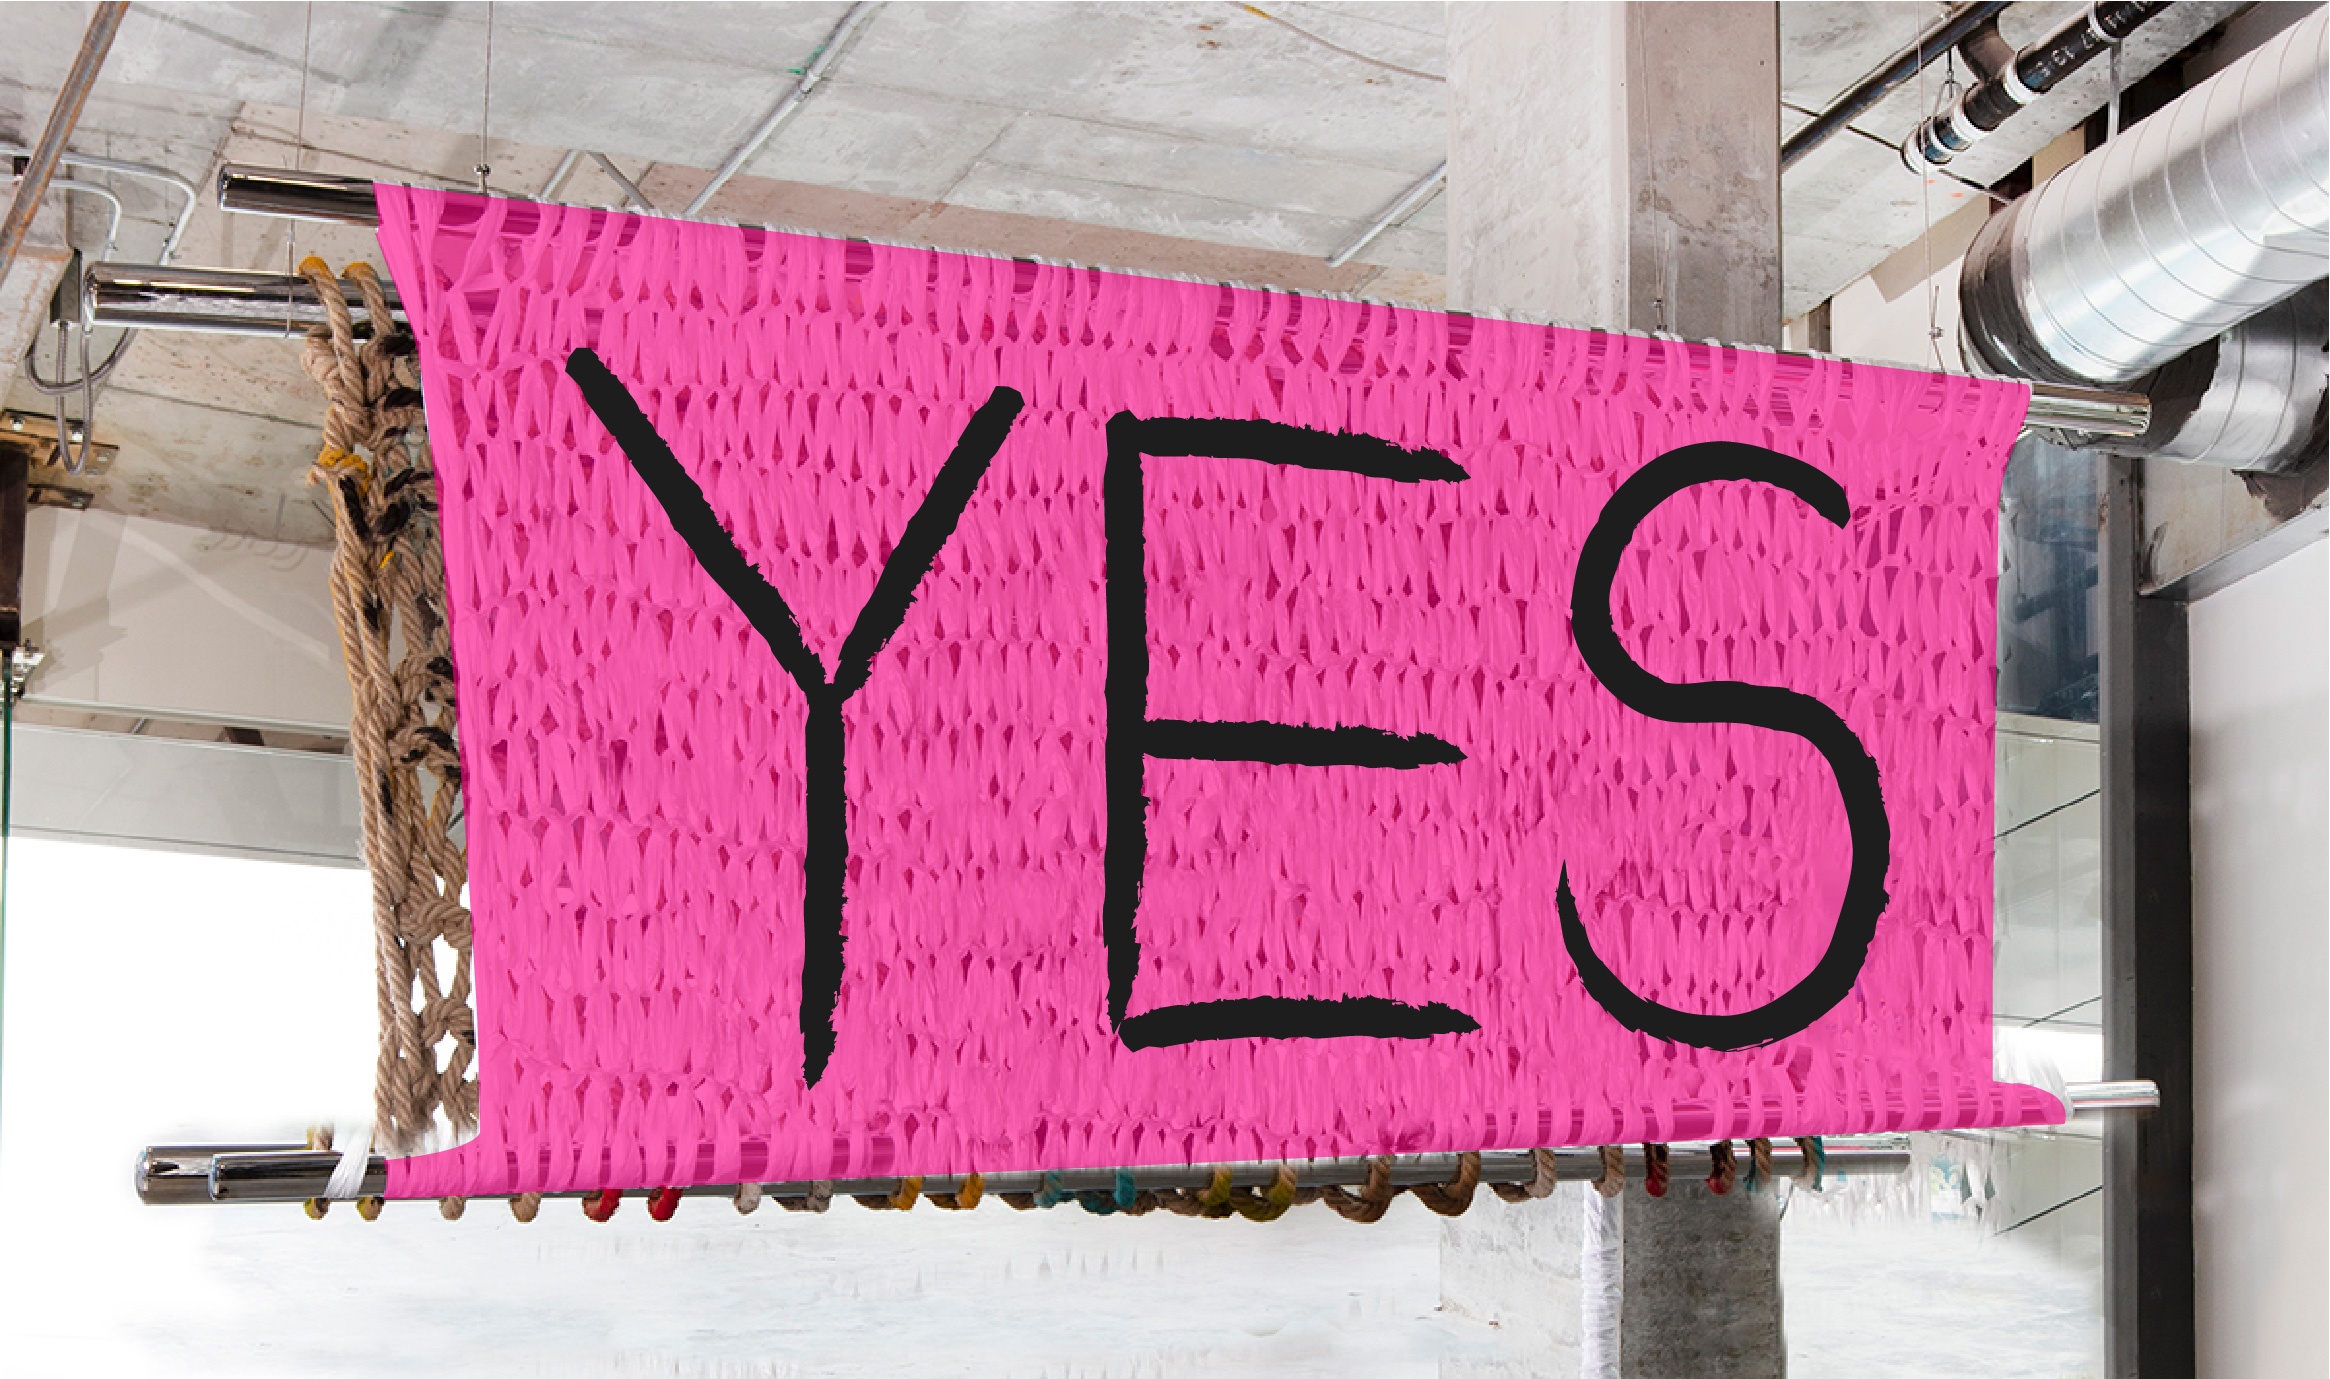 YES | 3 X 8' | PAINT ON PLASTIC